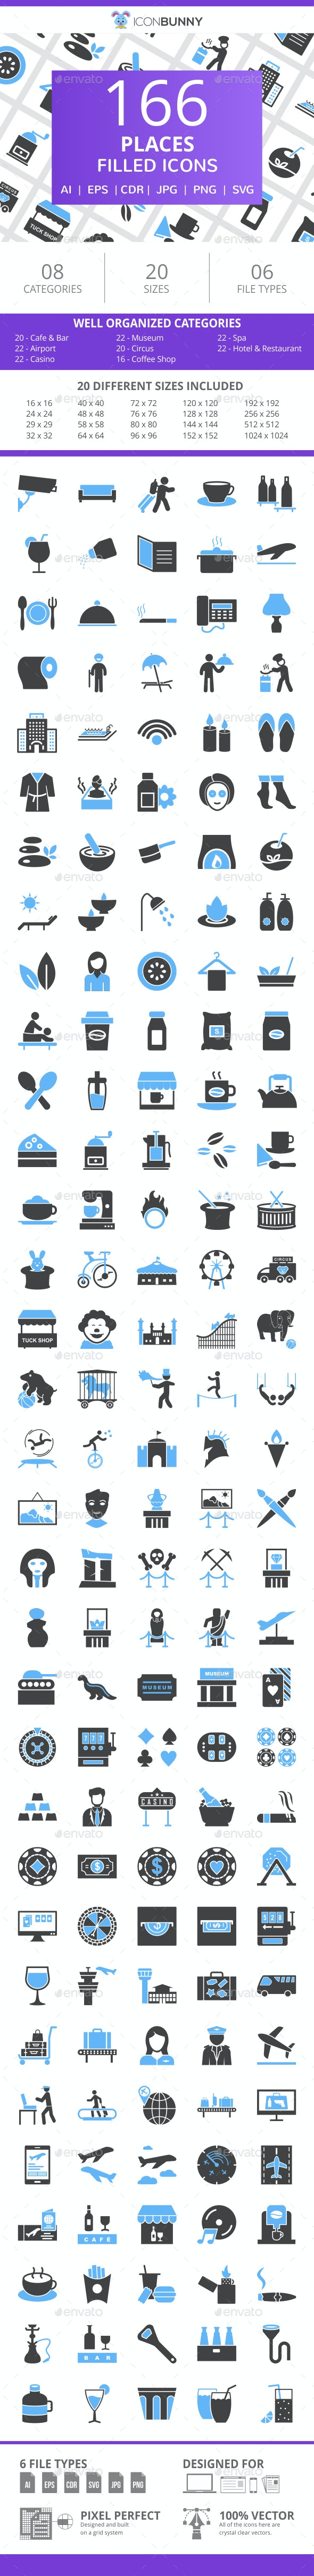 166 Places Filled Blue & Black Icons - Icons